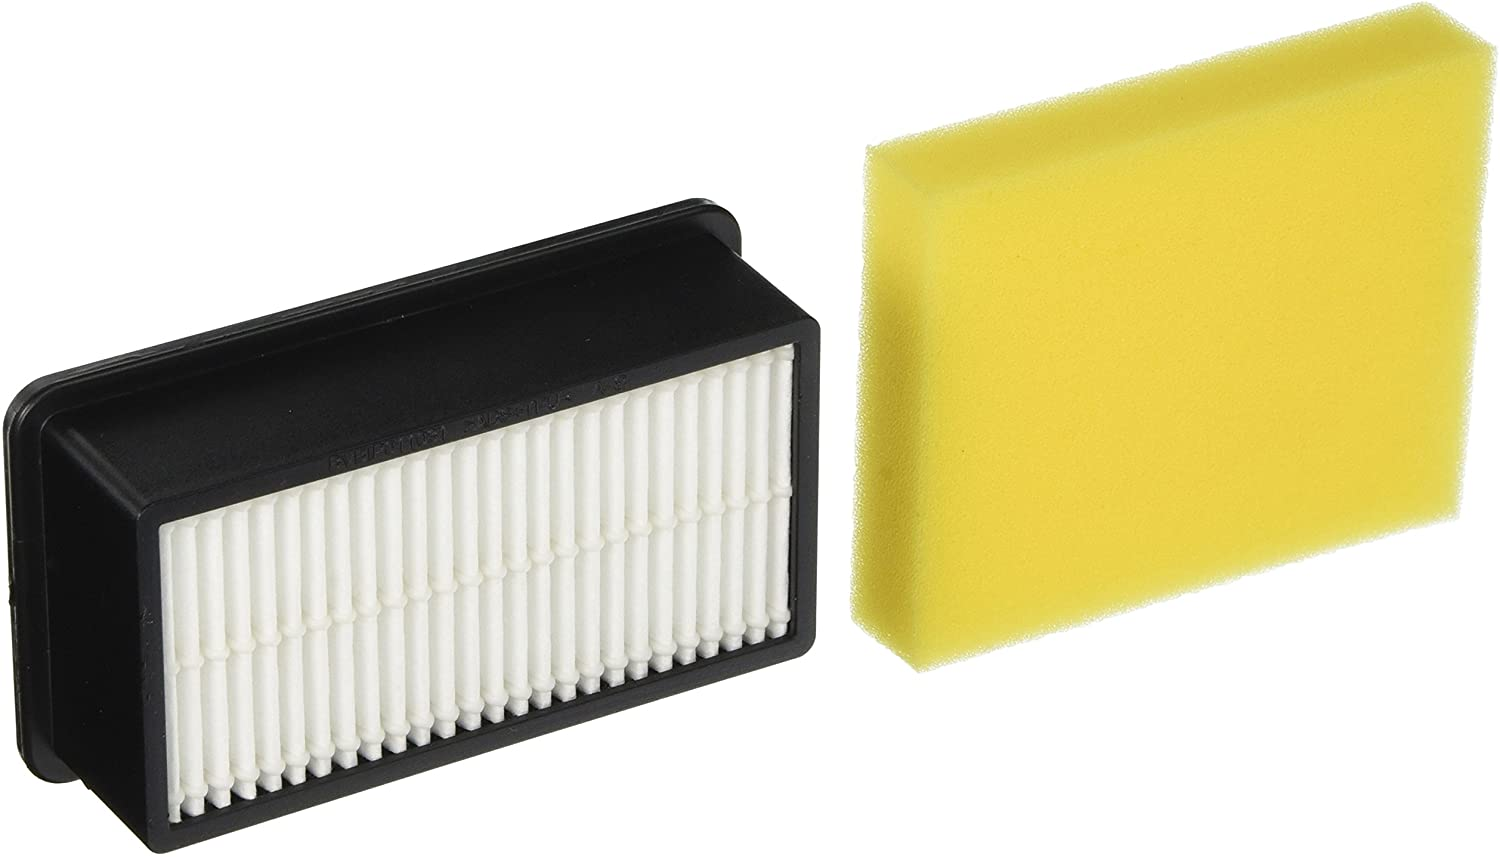 Bissell Style Filter Pack for CleanView Upright Vacuums, New OEM Part,1008